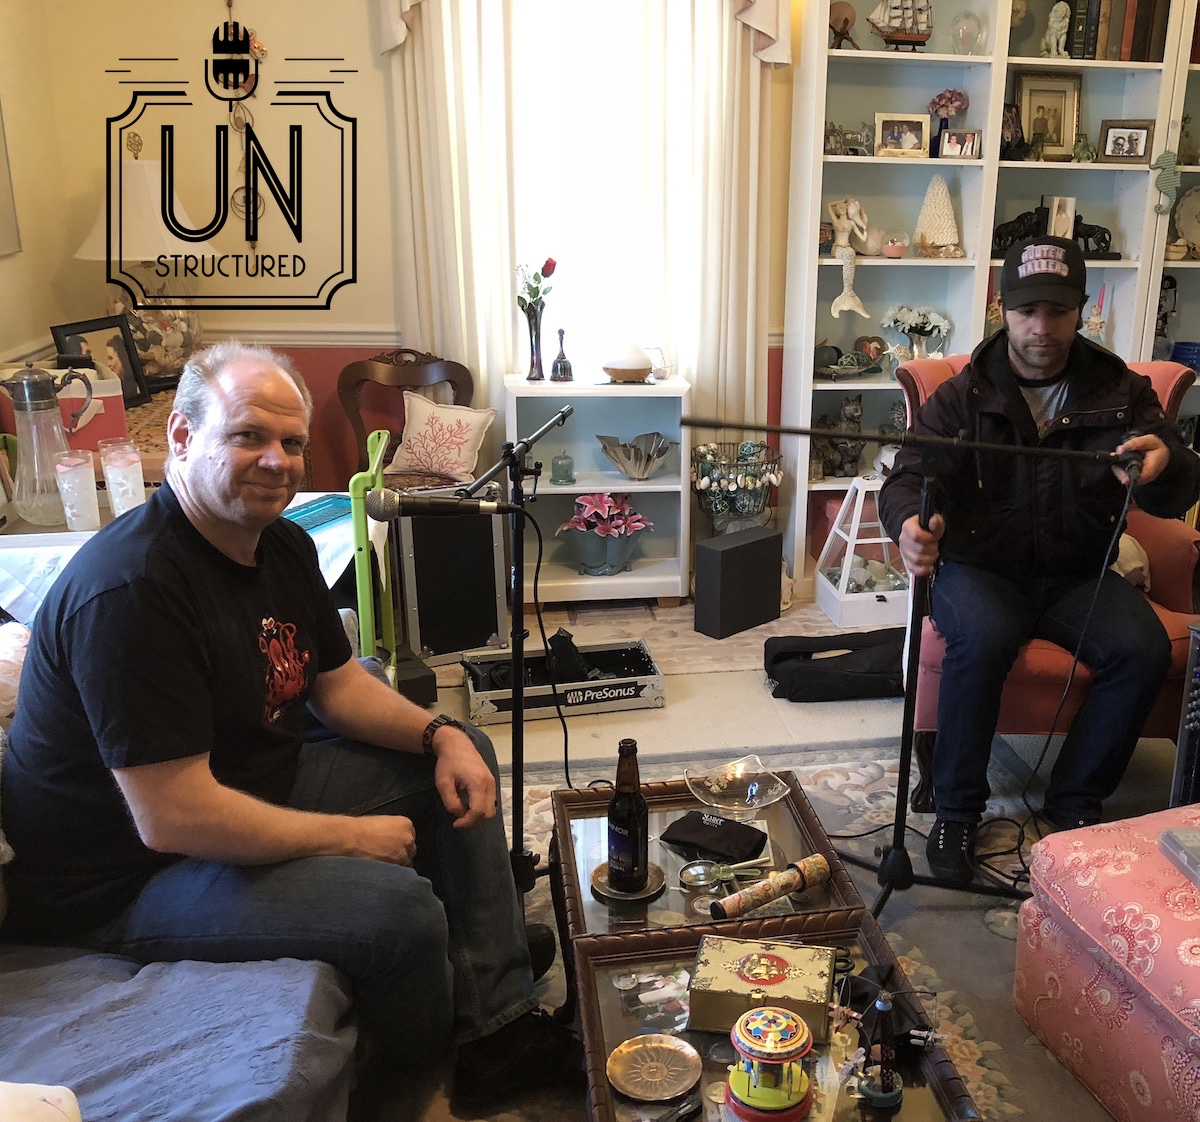 007 - Eric and Isaiah Gooley UnstructuredPod Unstructured interviews - Dynamic Informal Conversations with unique wide-ranging and well-researched interviews hosted by Eric Hunley